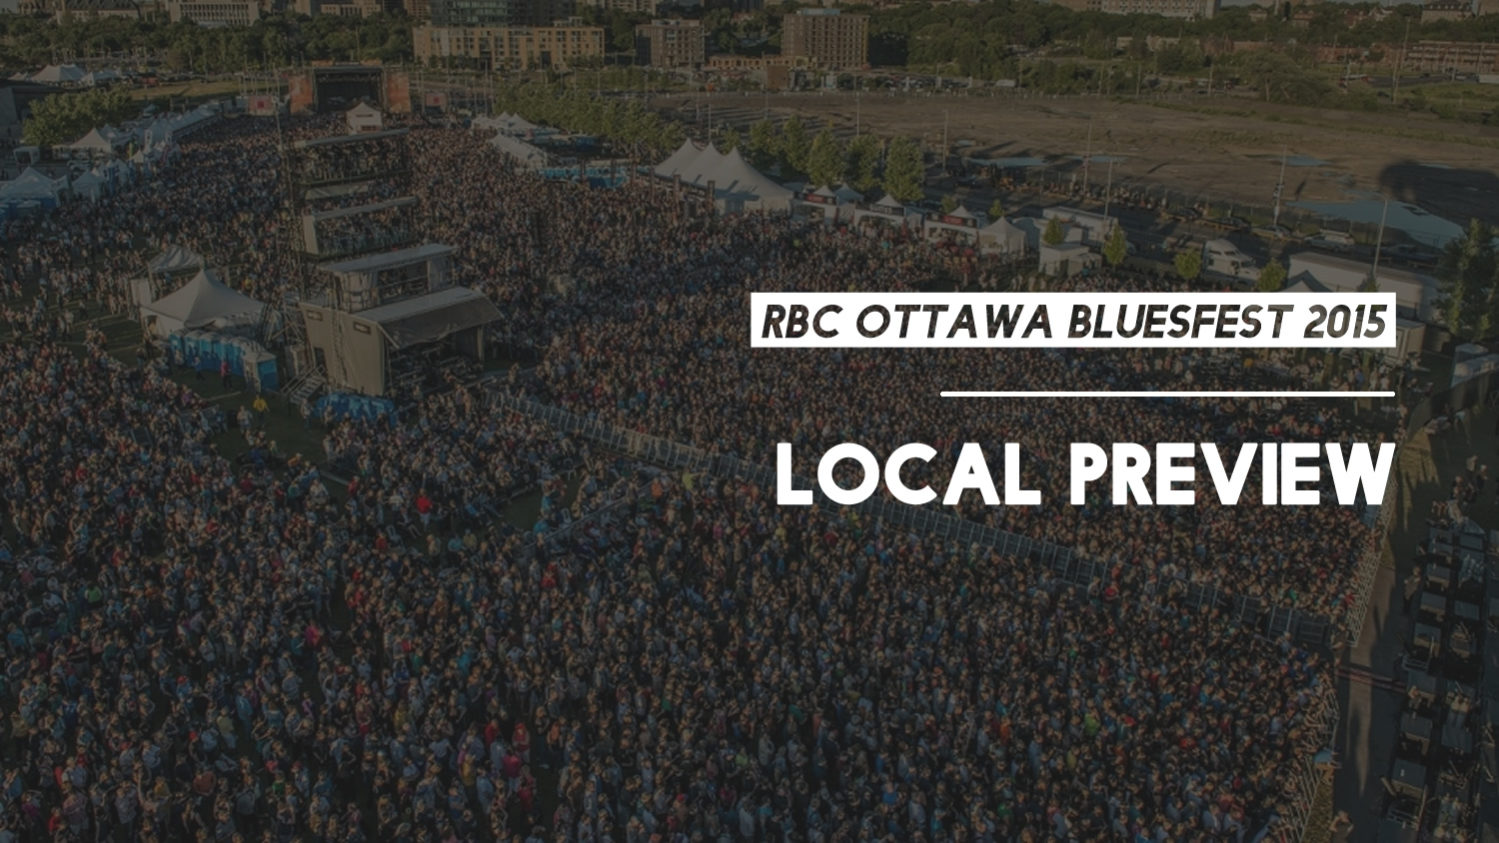 bluesfest, 2015, local preview